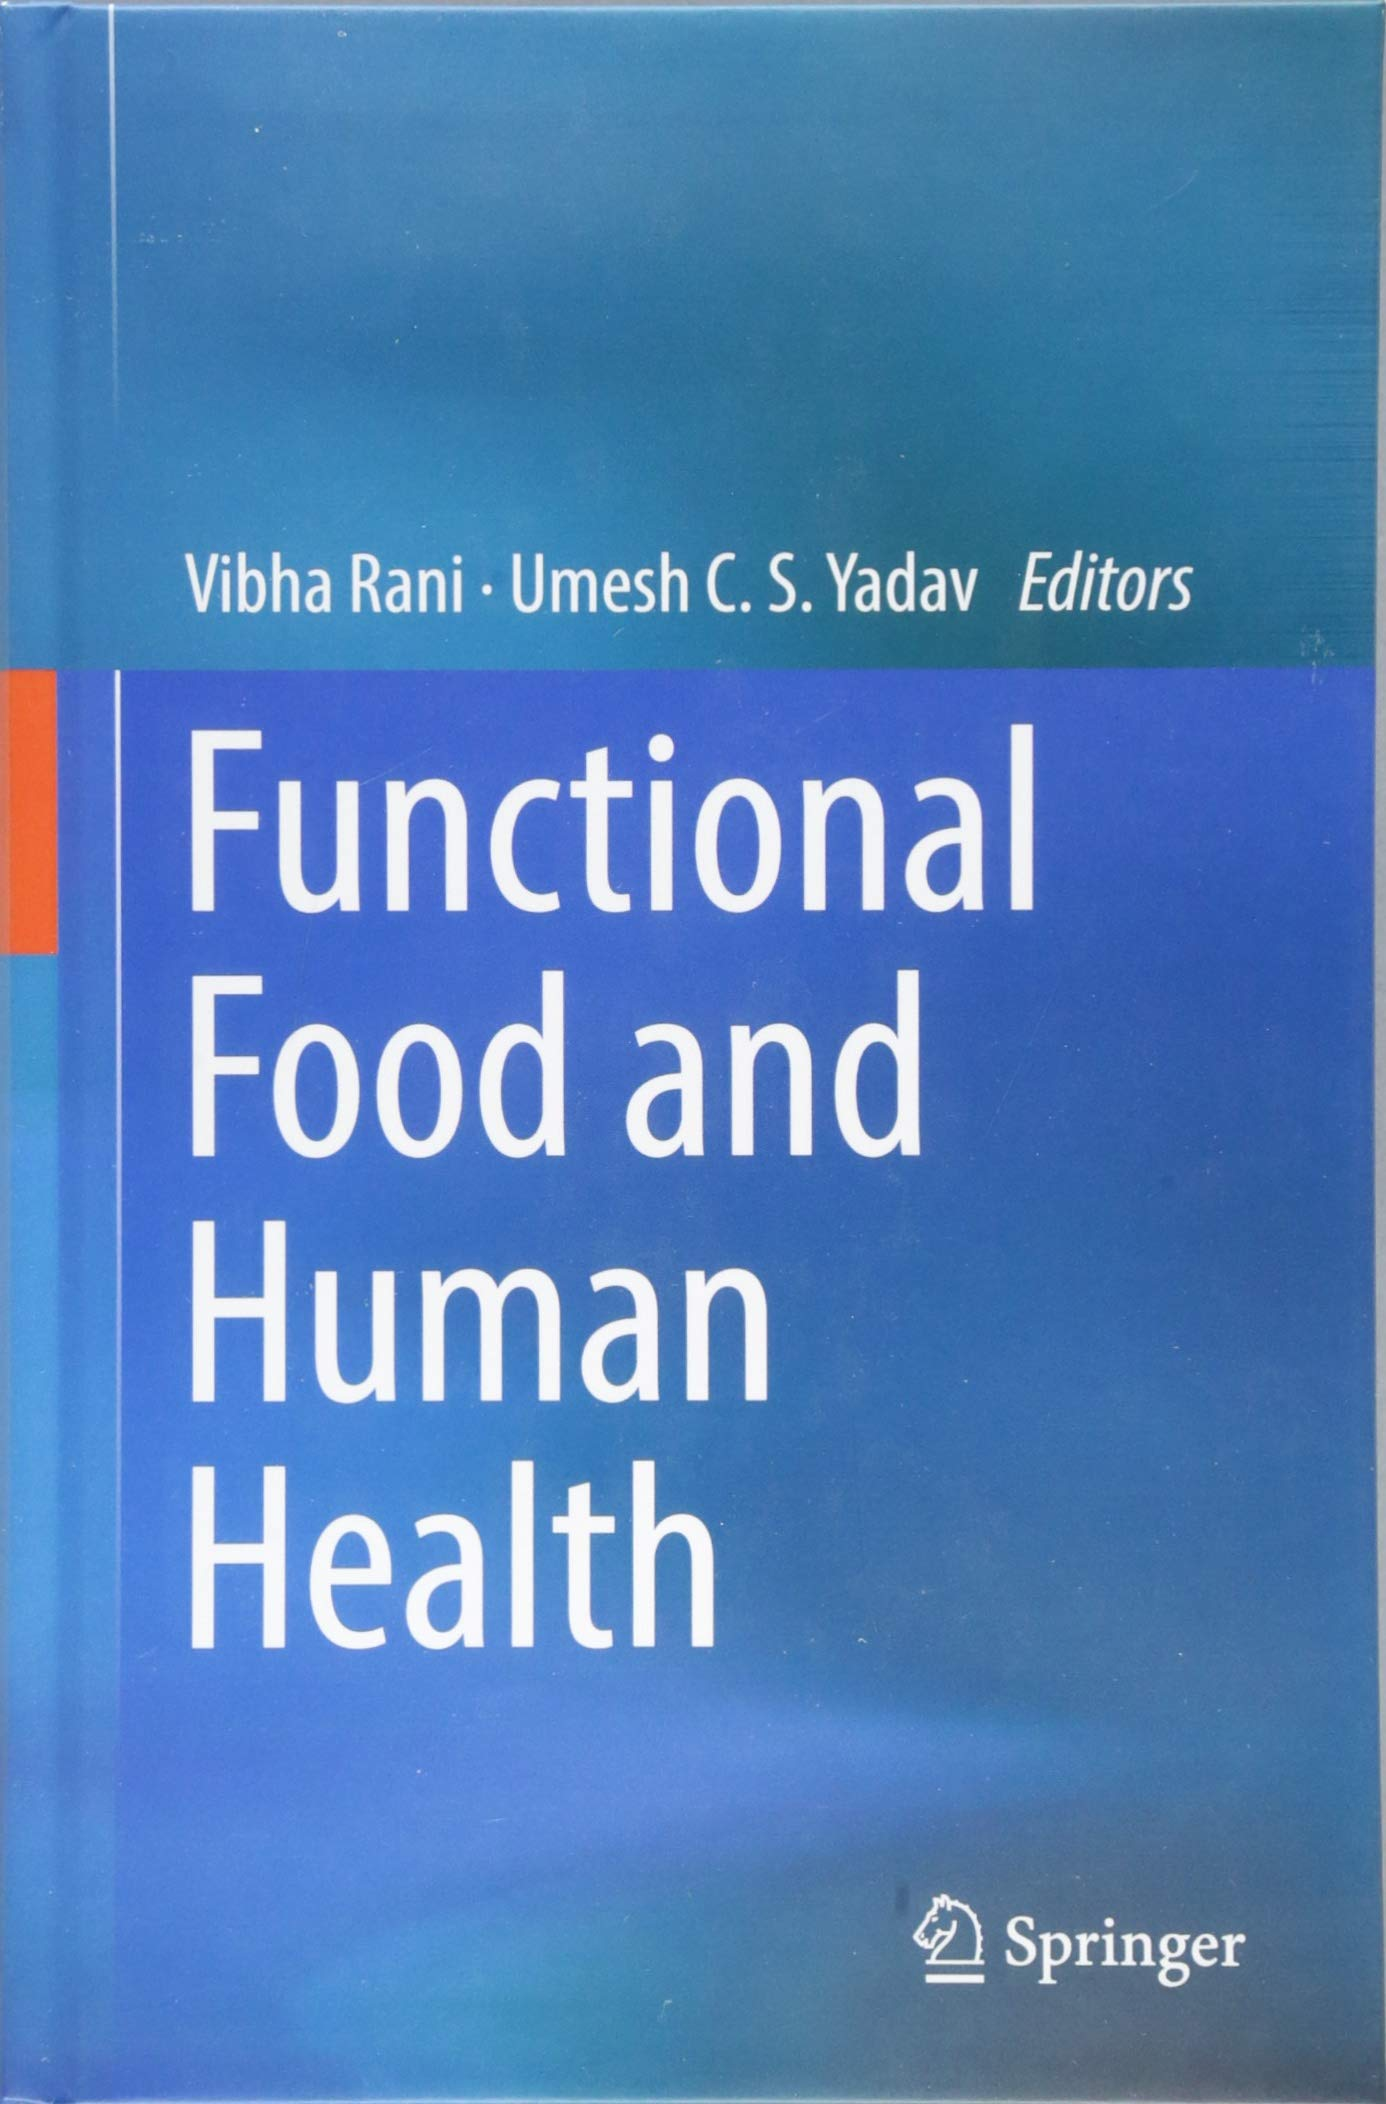 Functional Food and Human Health by Springer